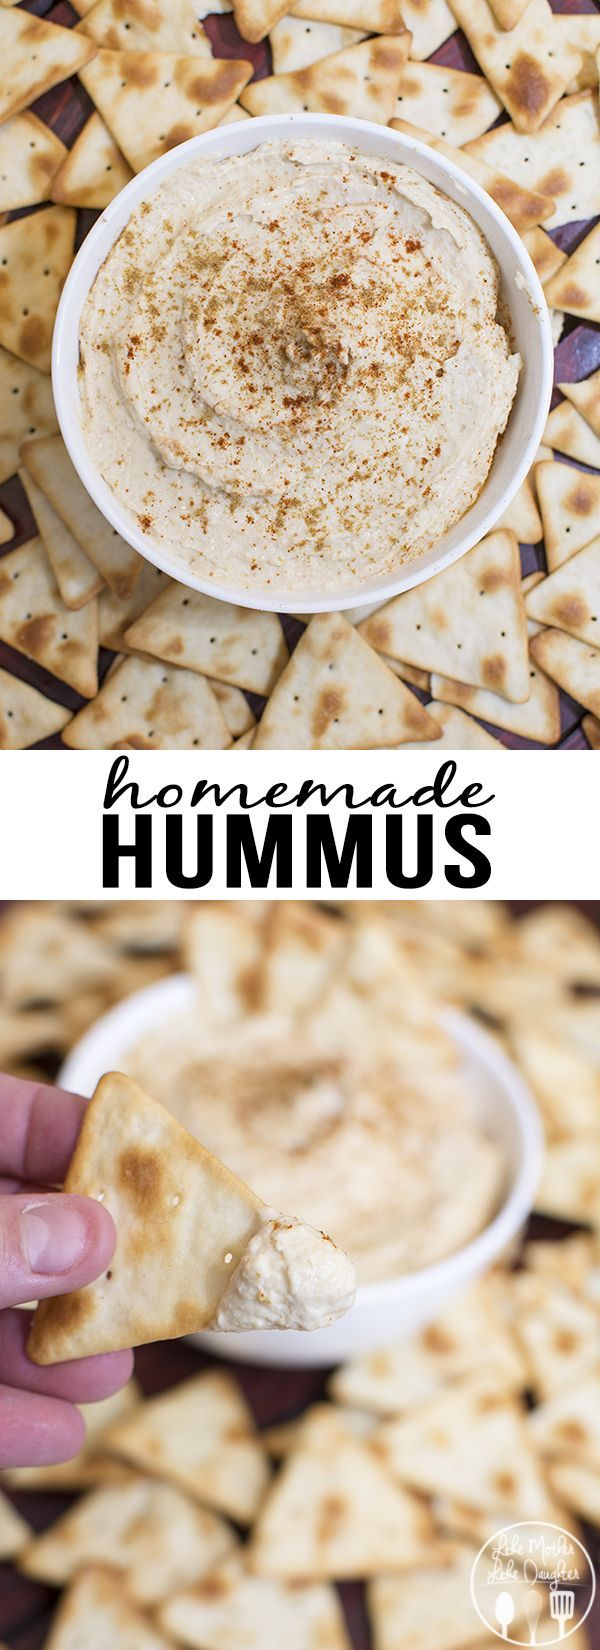 how to make great hummus